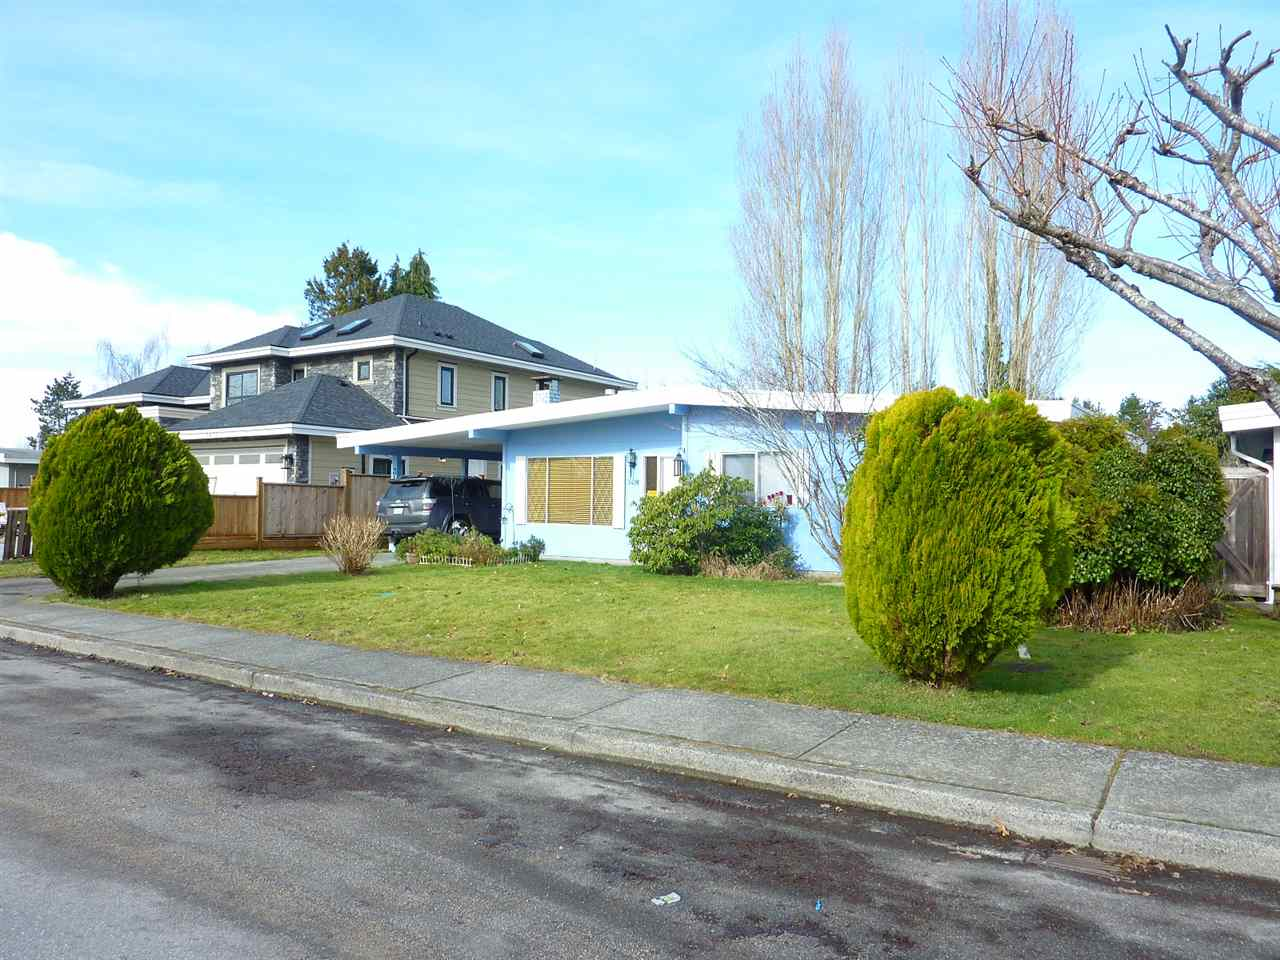 Main Photo: 3491 SPRINGFORD Avenue in Richmond: Steveston North House for sale : MLS® # R2139973